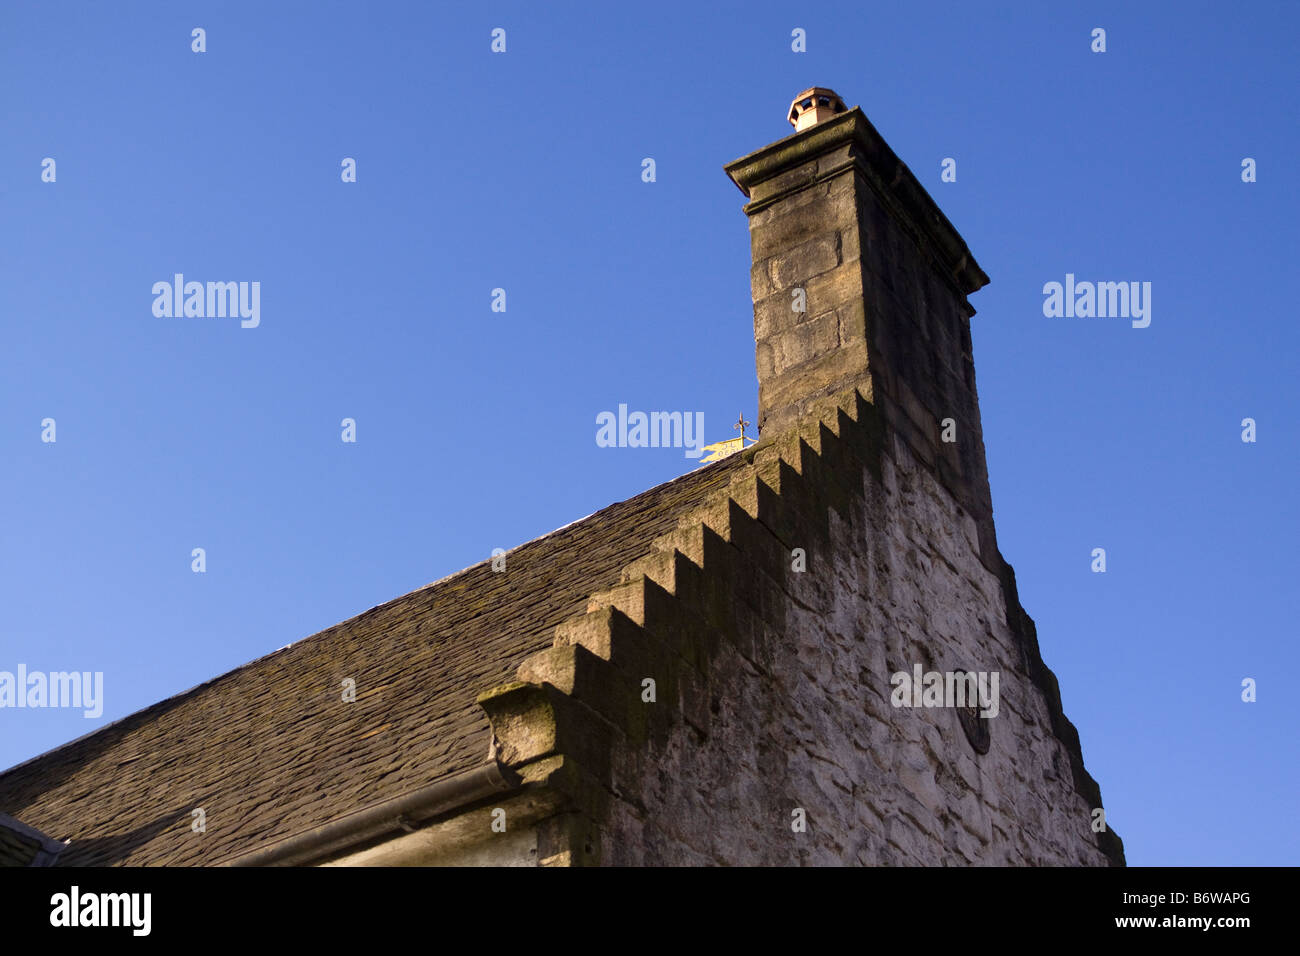 Stepped crows foot stone gable - Stock Image